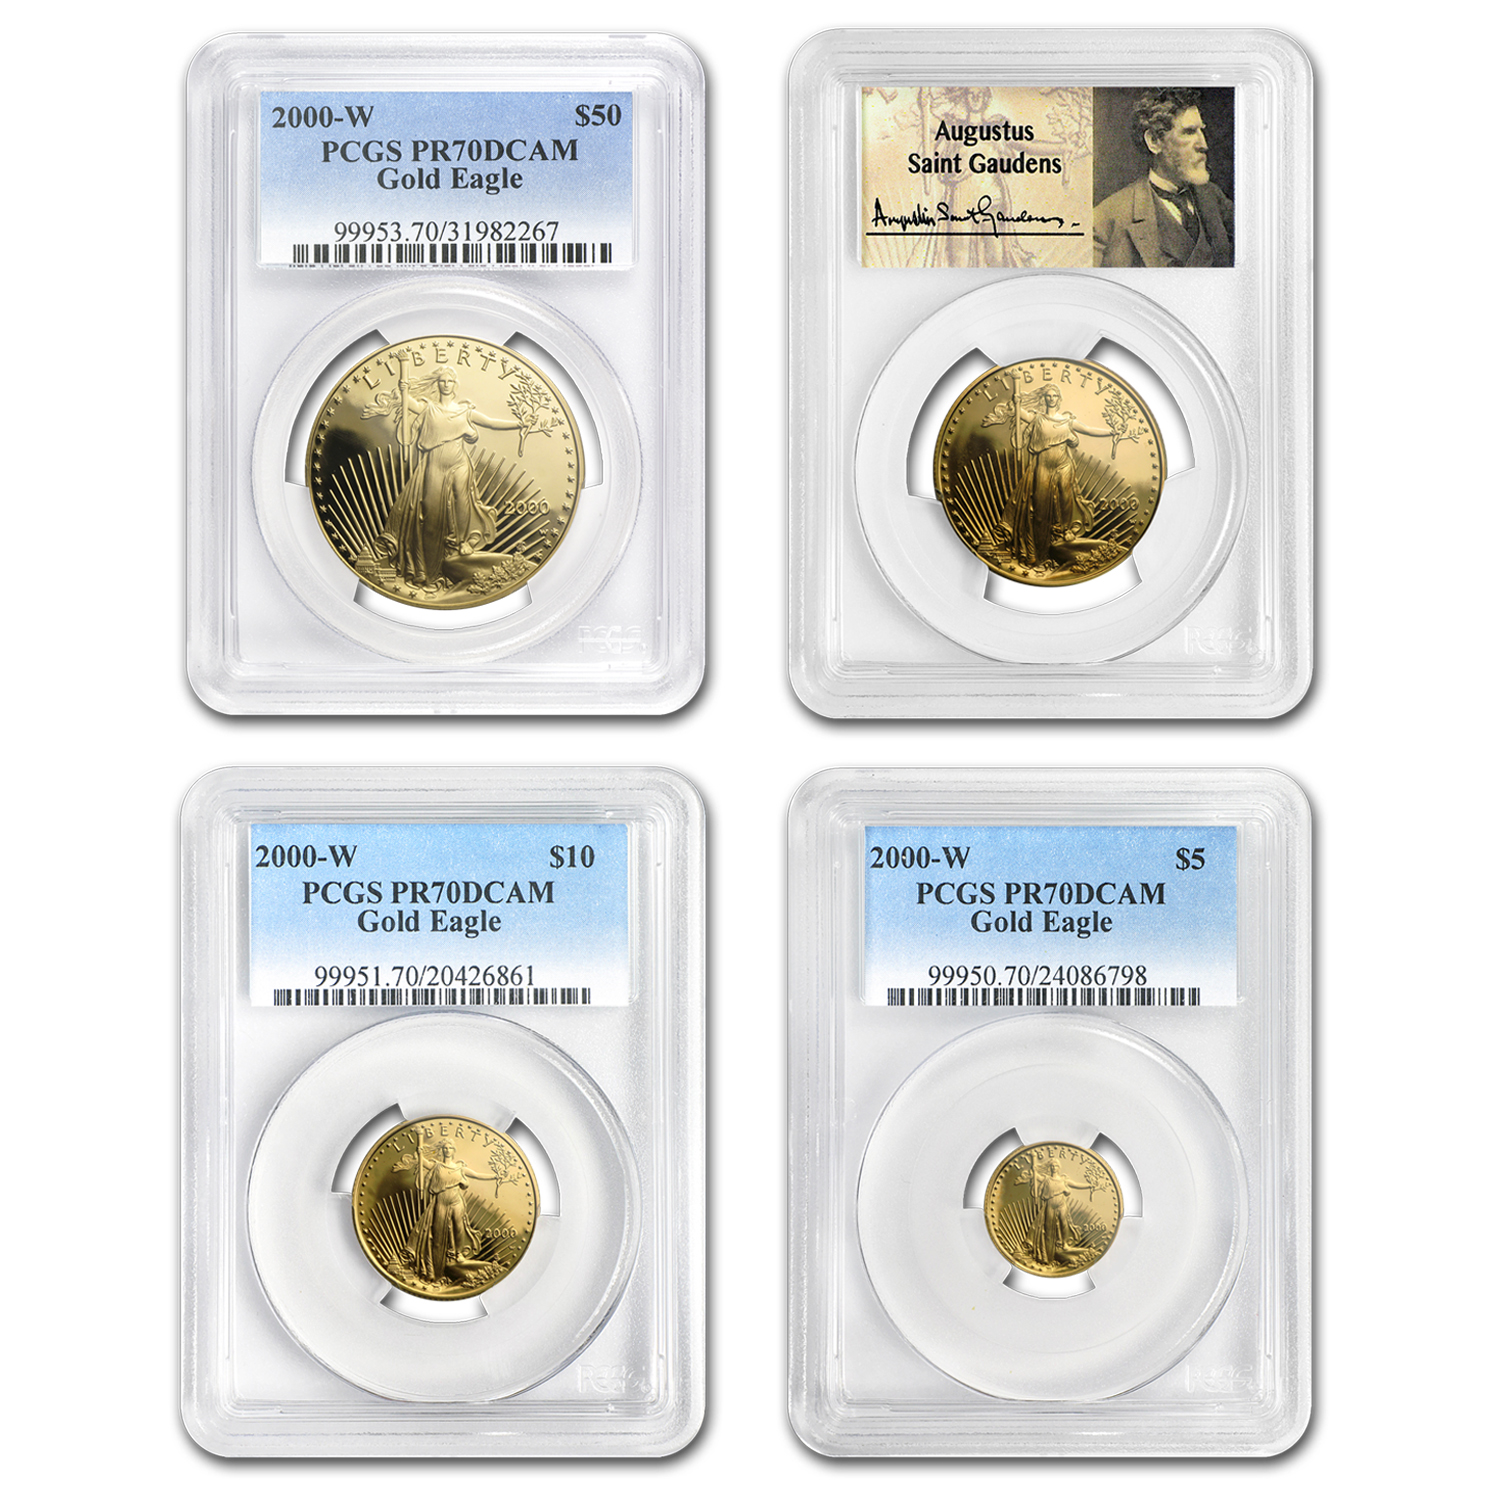 2000-W 4-Coin Proof Gold American Eagle Set PR-70 PCGS